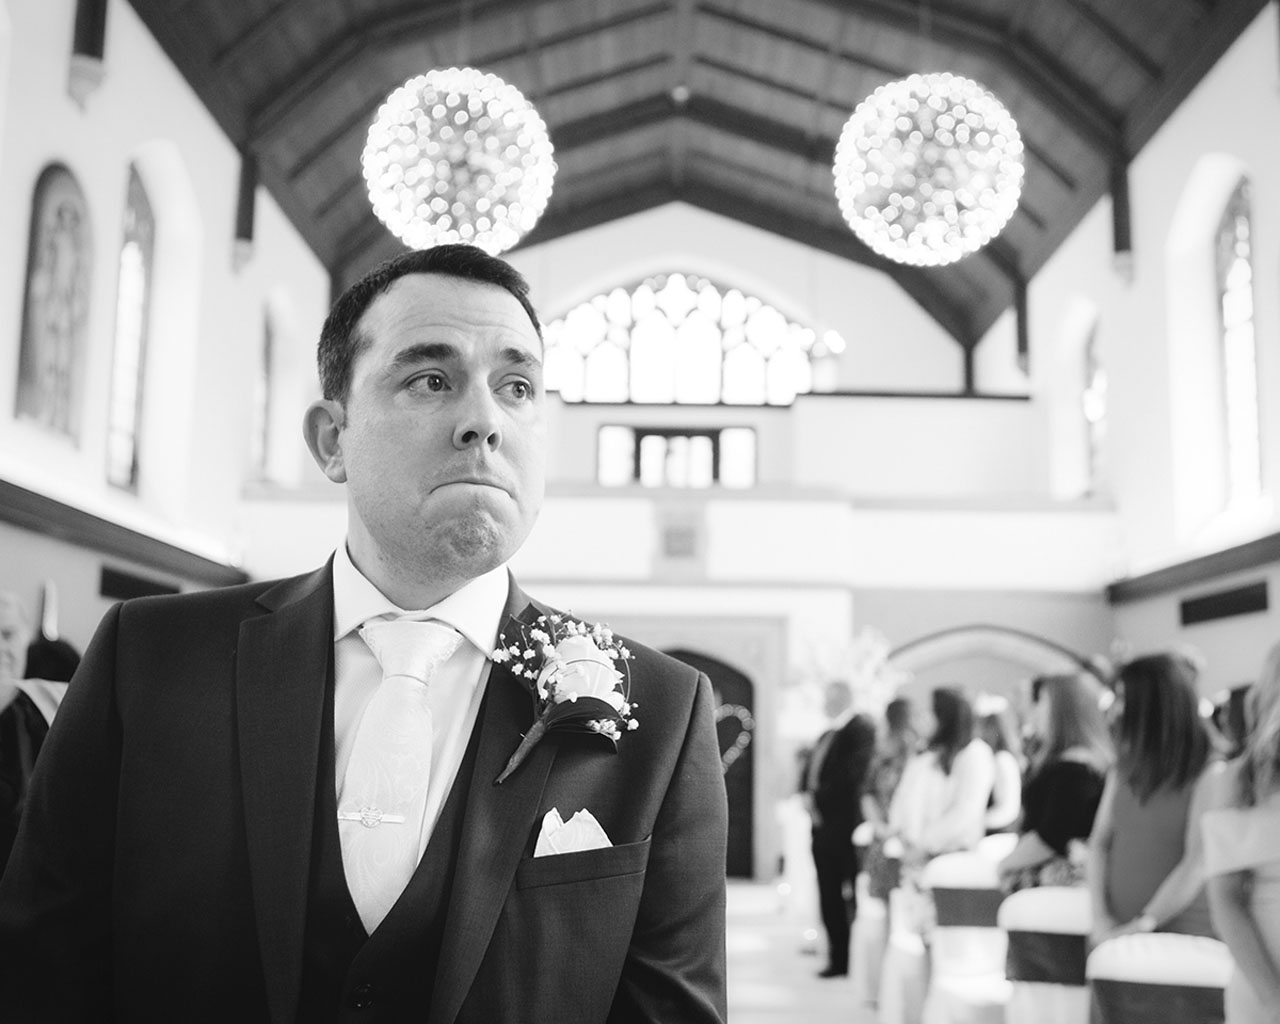 Anne Marie and Andrew Wedding Ceremony - Photography by Katrina Matthews Photography - Videography by Veiled Productions - Hanbury Manor Wedding Videographer